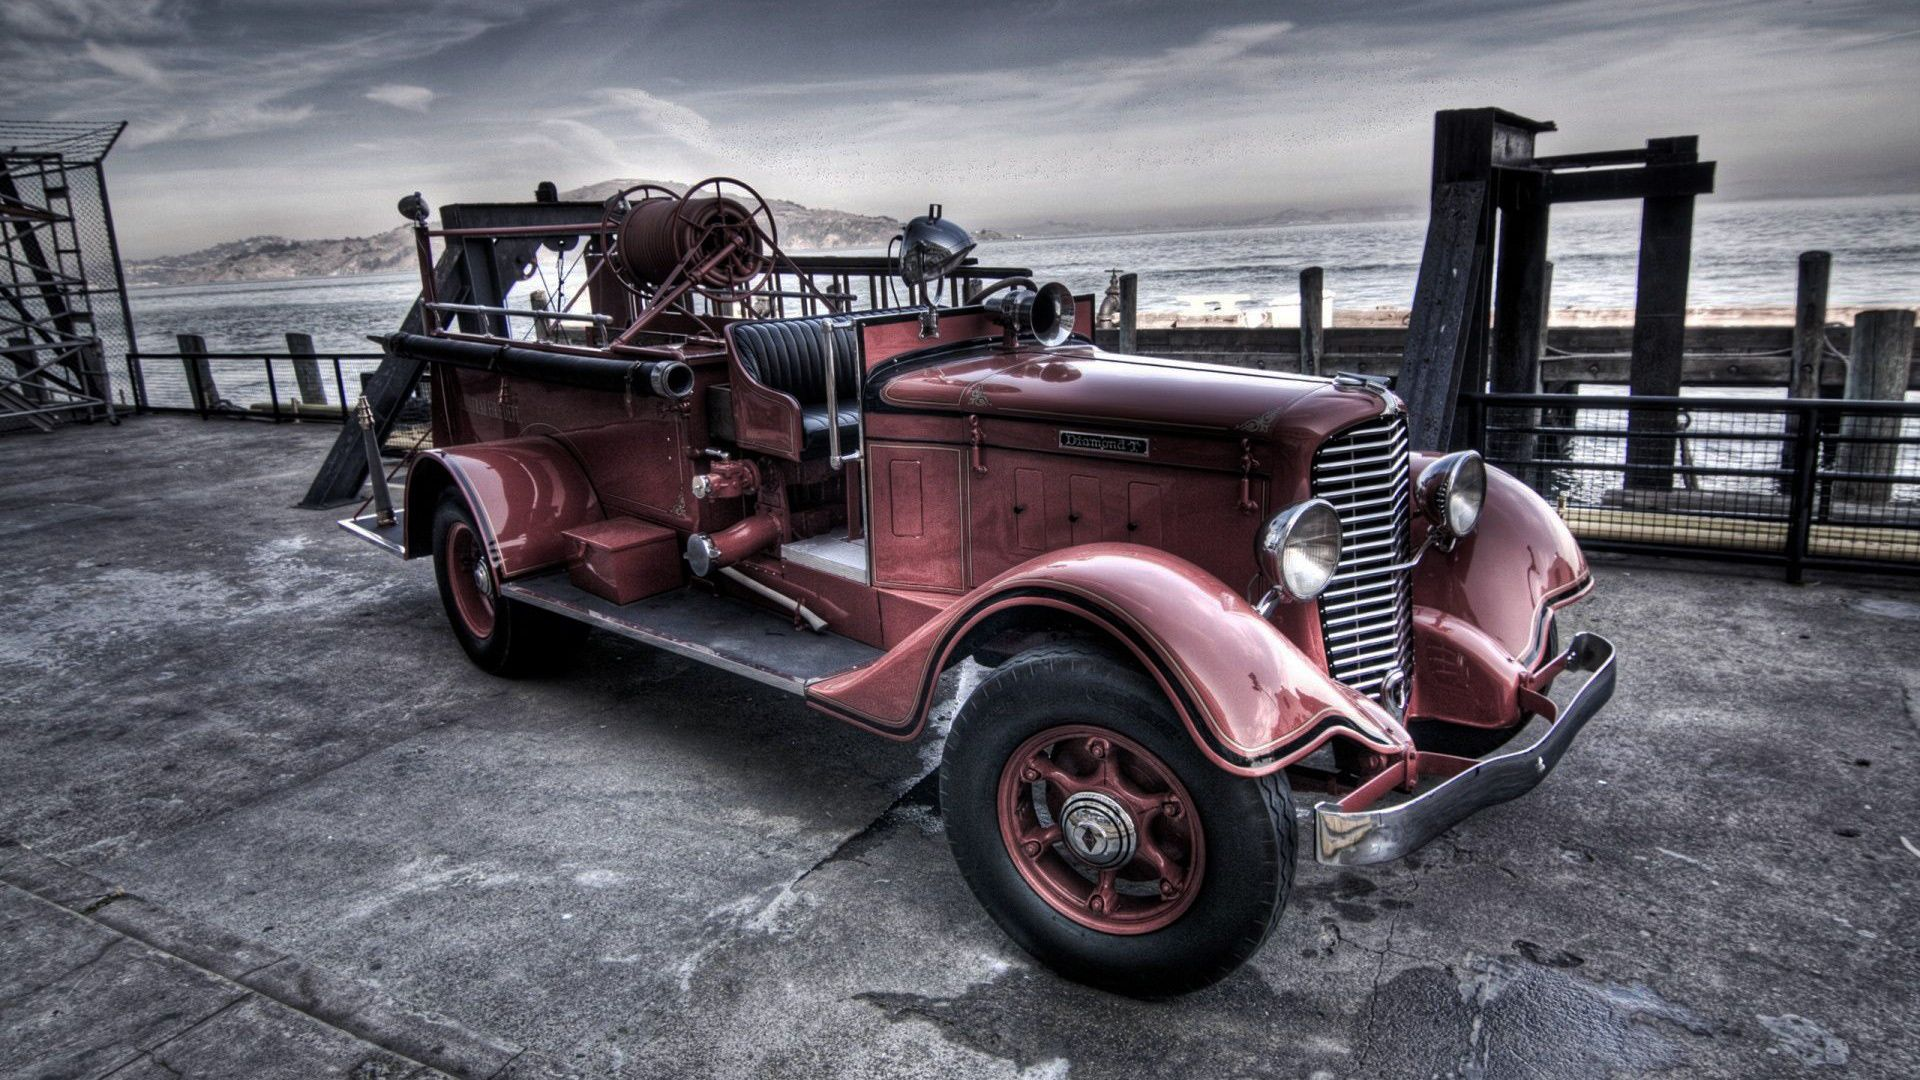 Old Fire Truck | PHOTOGRAPHY | Pinterest | Fire trucks, Fire engine ...